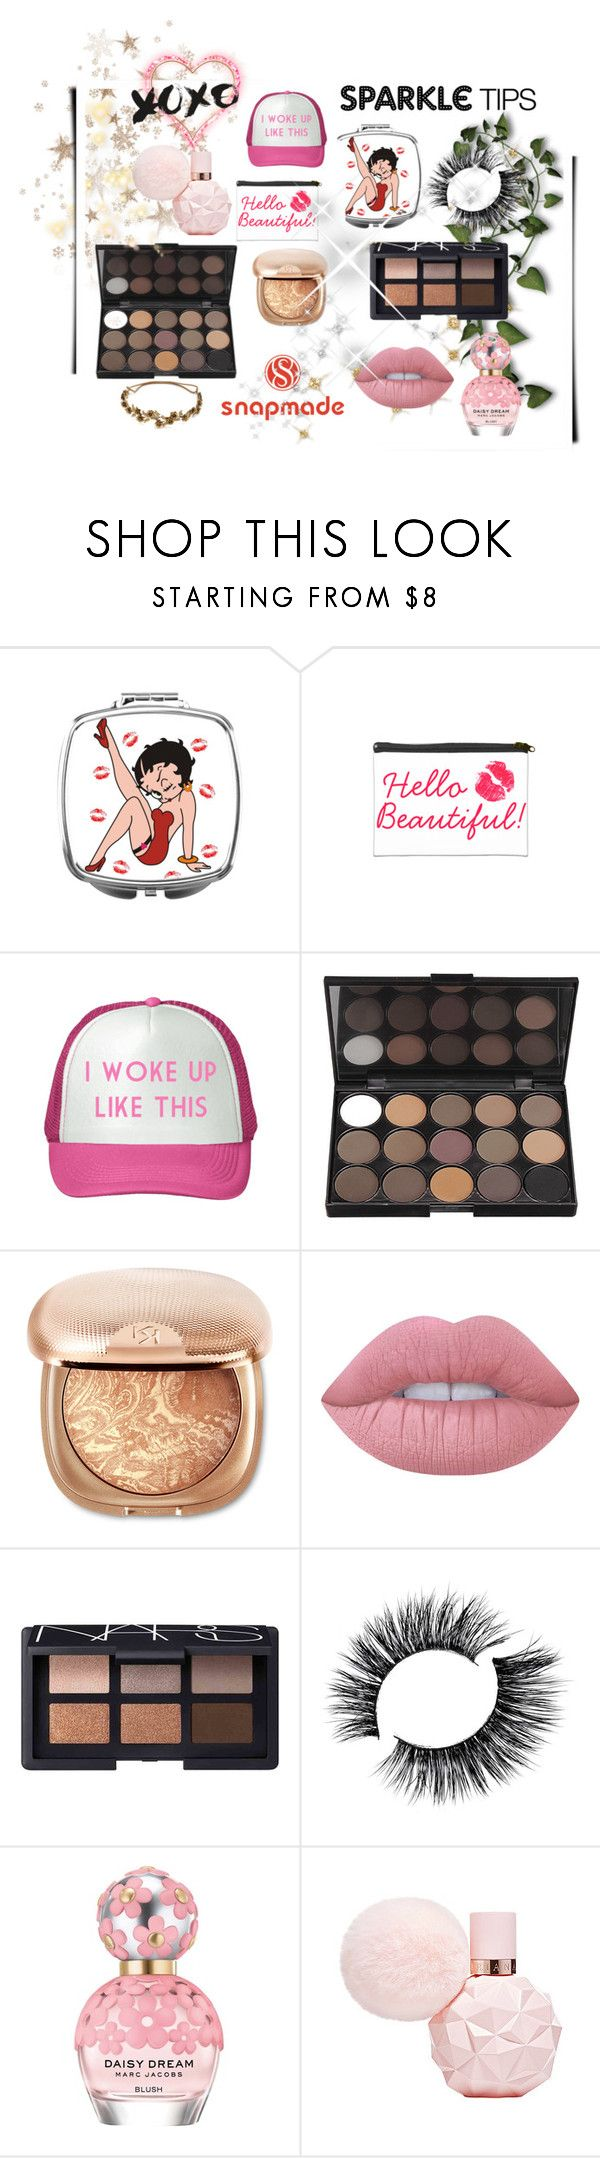 """""""♡WIN SNAPMADE $25 COUPON!♡"""" by stylishmaze ❤ liked on Polyvore featuring beauty, Lime Crime, NARS Cosmetics, Marc Jacobs and Jennifer Behr"""